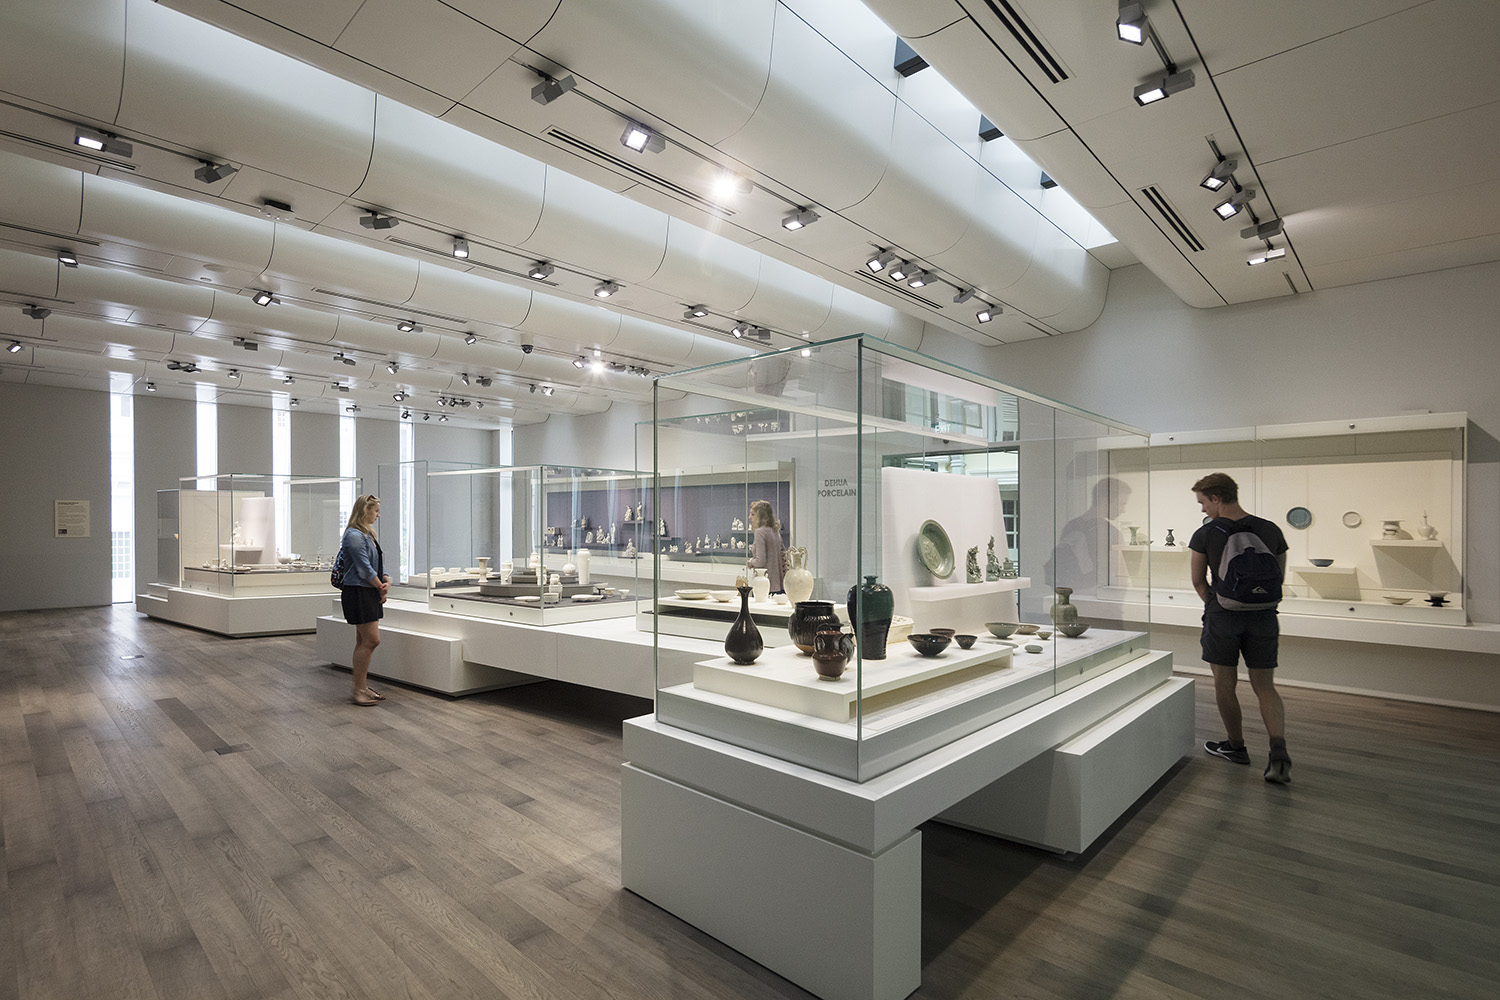 Chinese Ceramics explores the production techniques, historical uses and cultural significance of ceramic products throughout Chinese history.